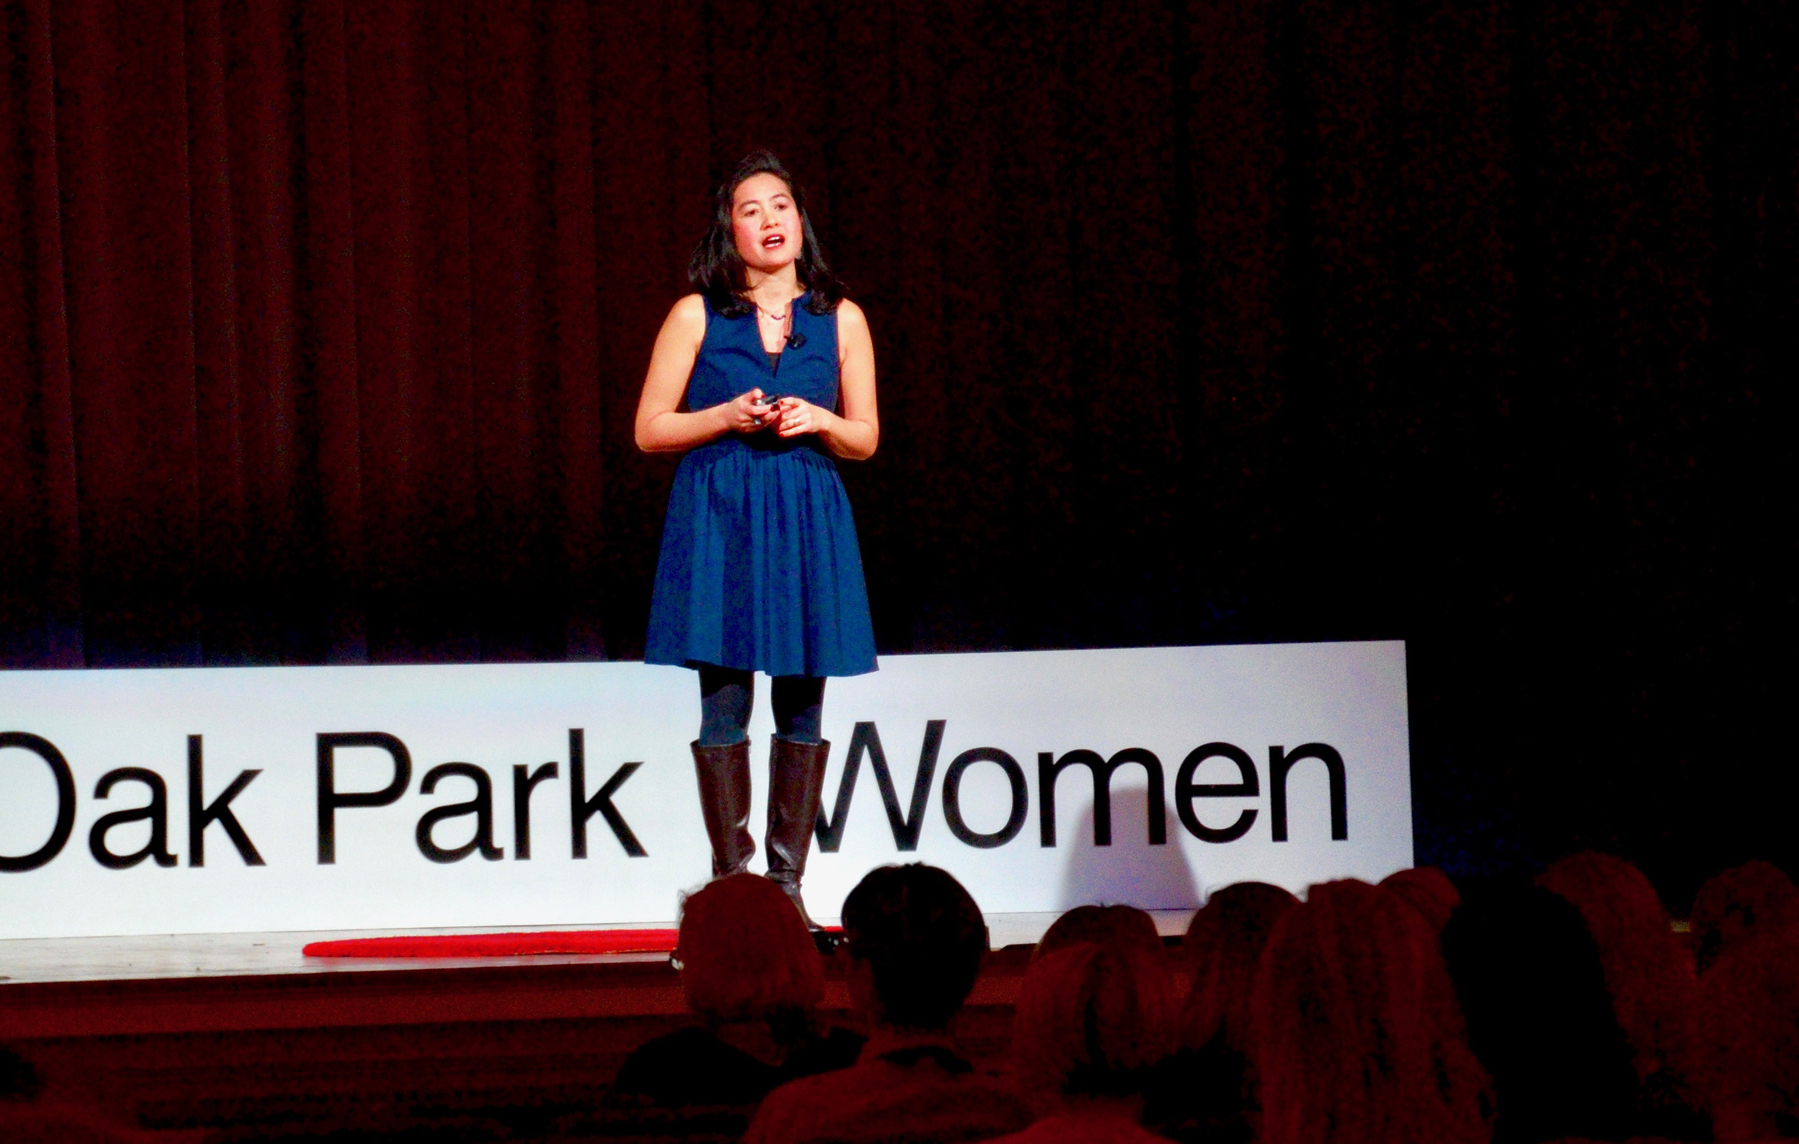 """Ana Garcia Doyle presents her TEDx Oak Park Women talk, """"Ecology and Equity: What's Possible?""""Thurs., Nov. 2, 2017 at the 19th Century Club in Oak Park, Ill."""